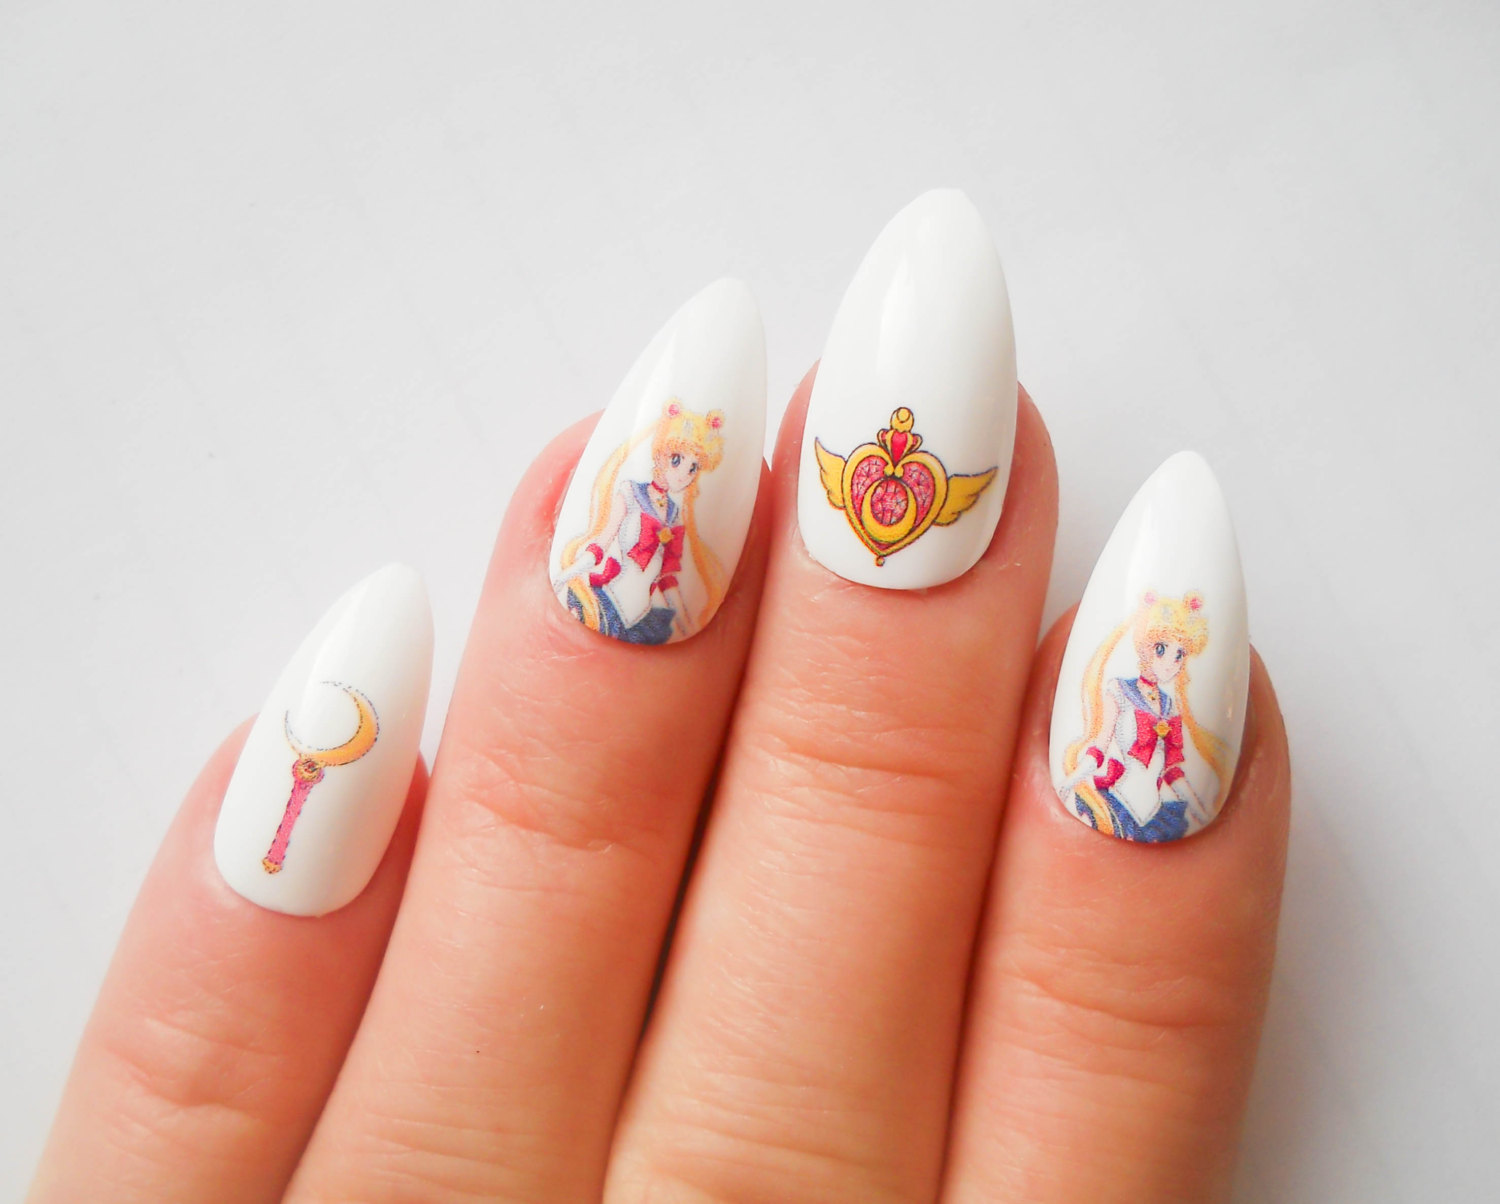 Fake Nails Wallpapers High Quality   Download Free